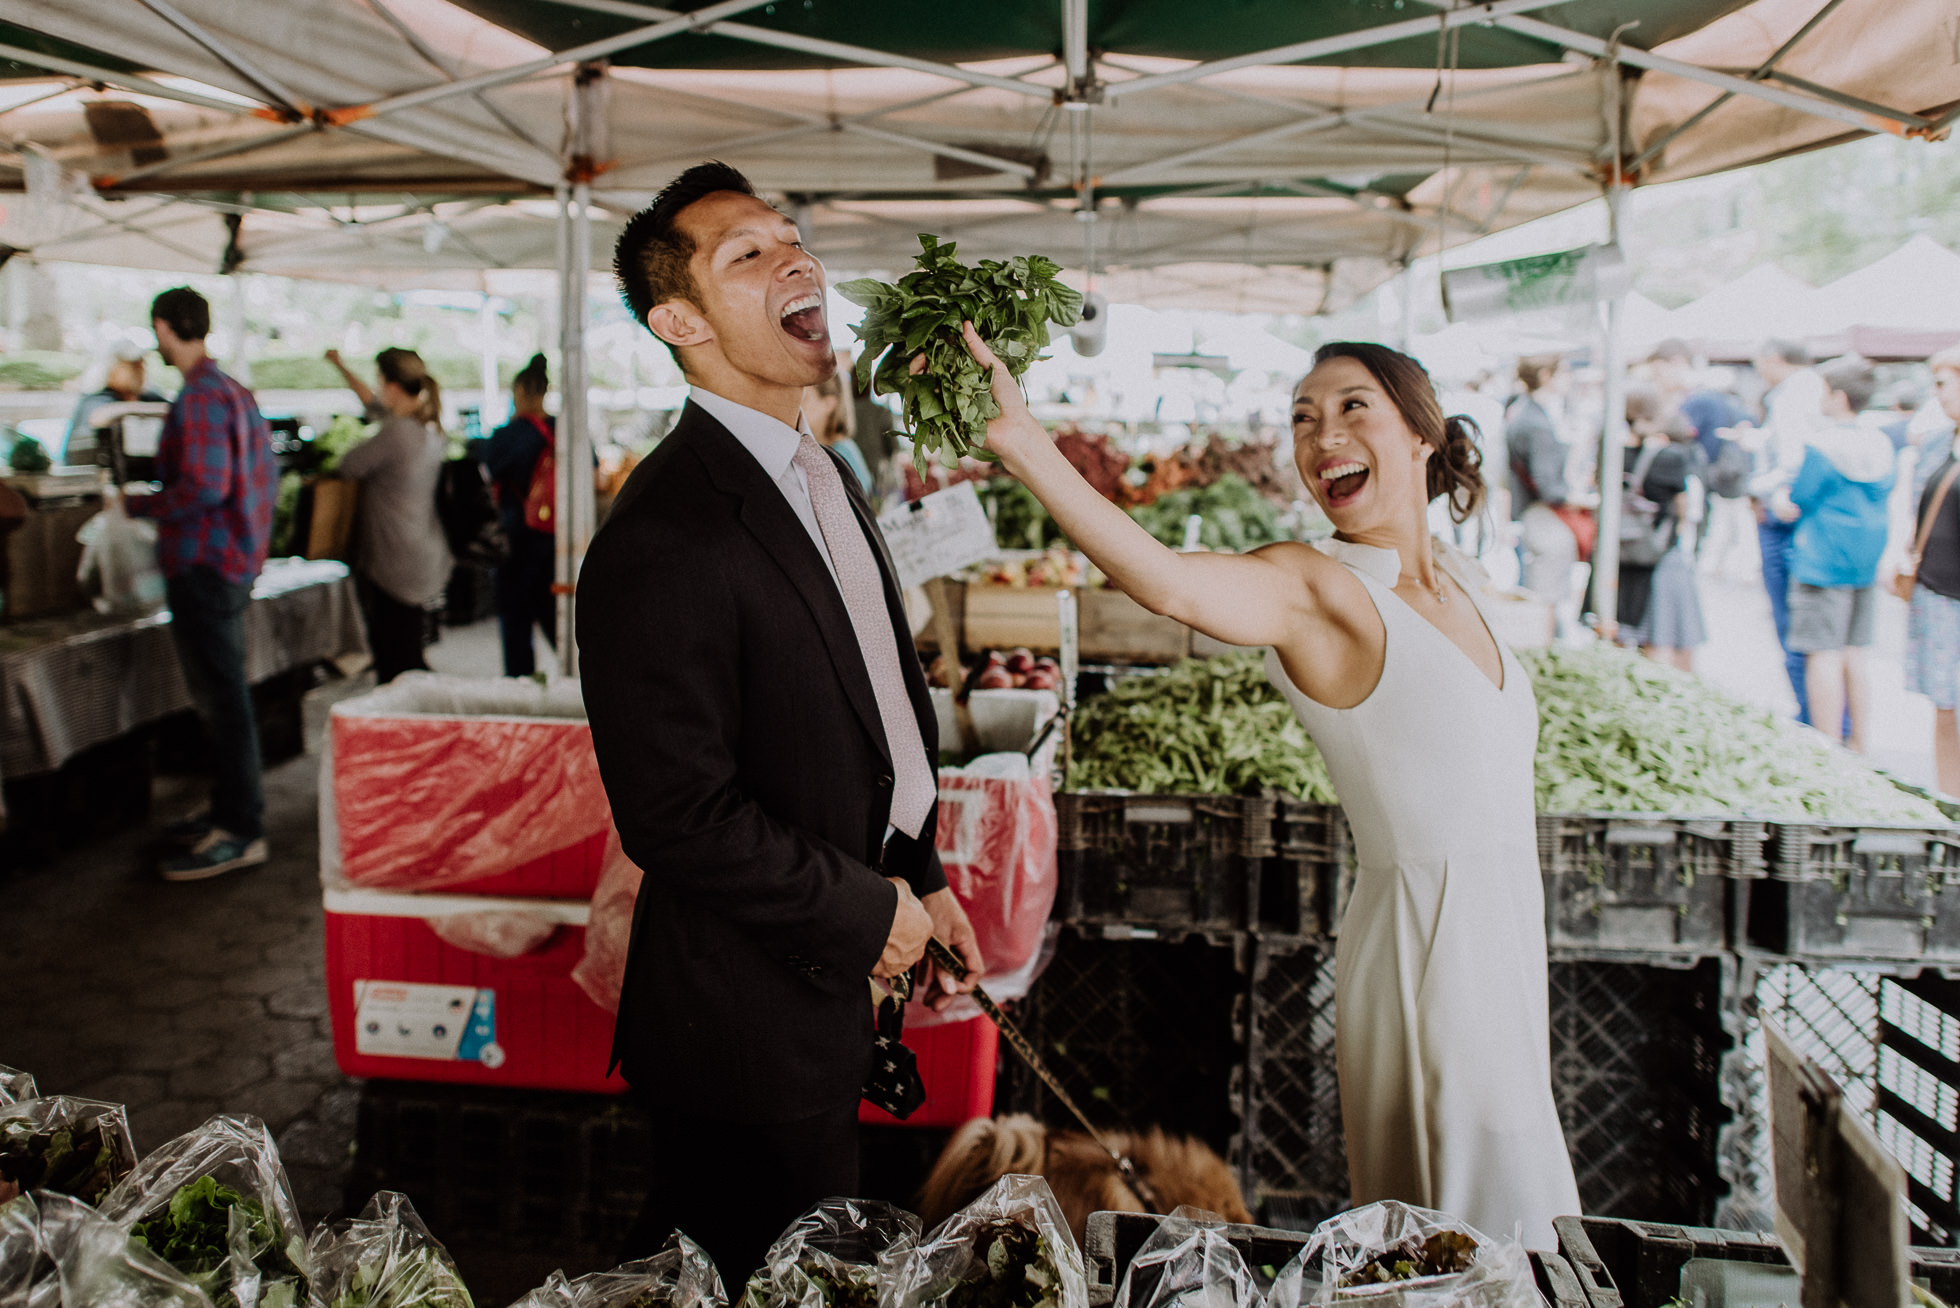 NYC greenmarket engagement photos